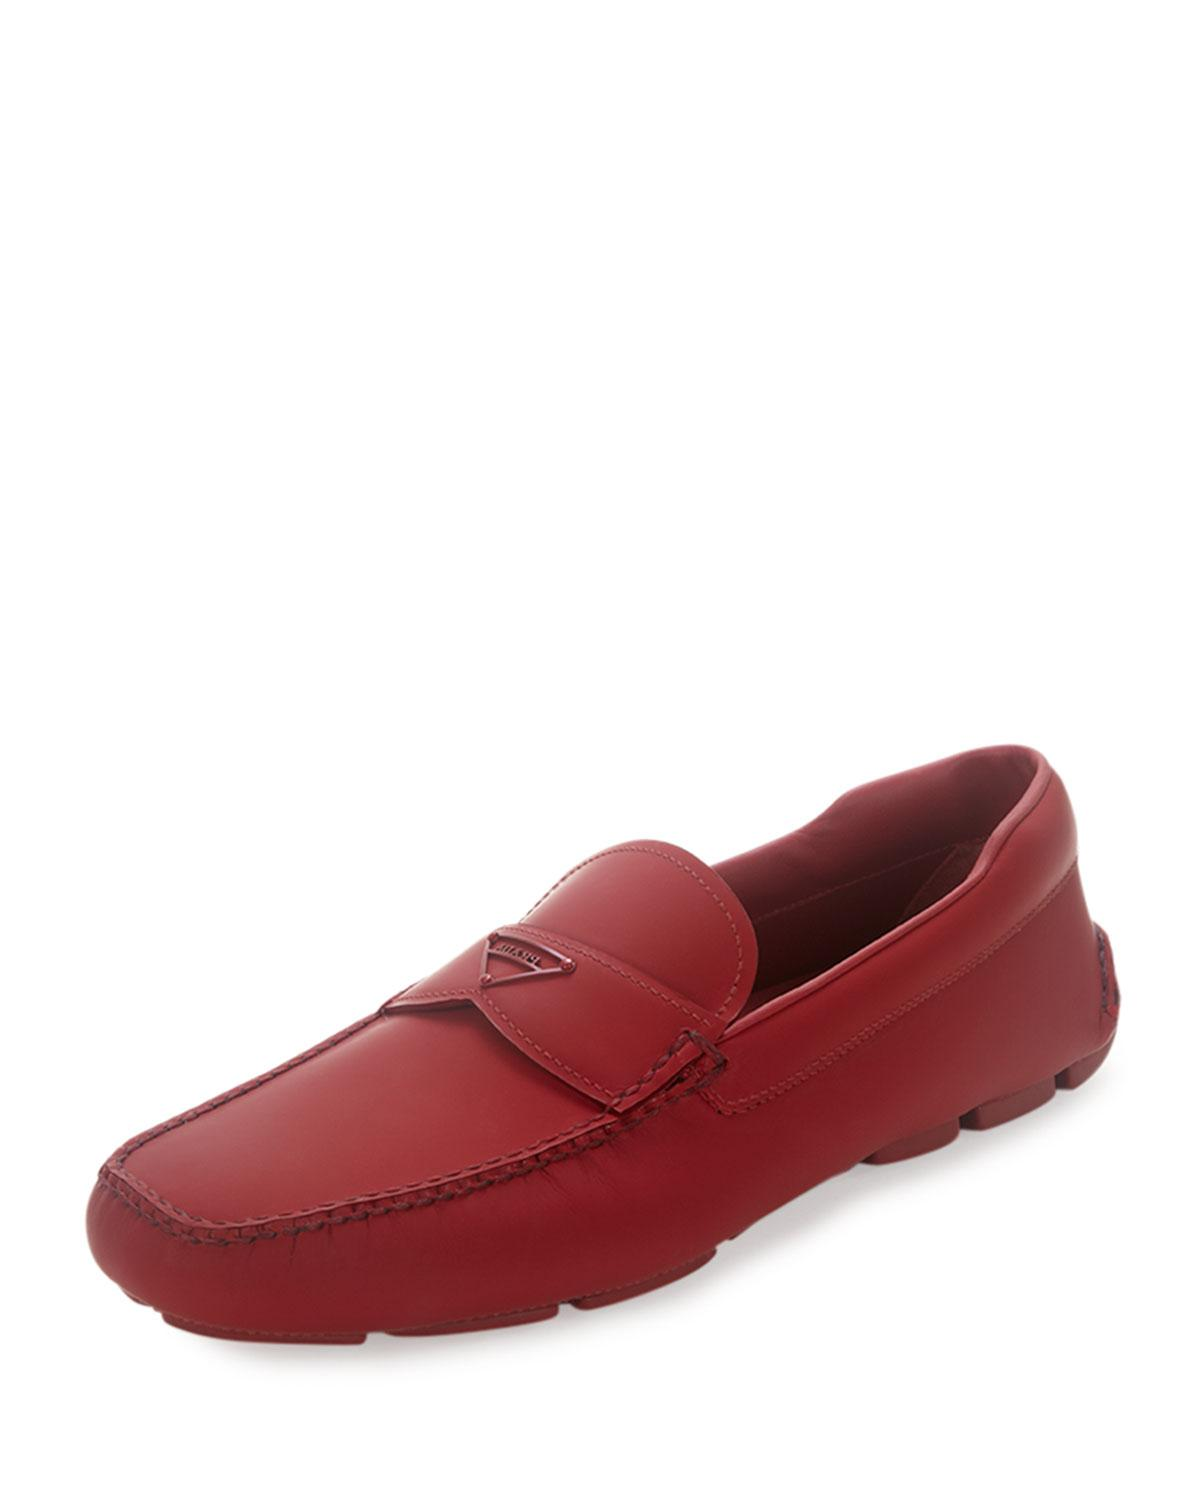 Prada Leather Slip-on Loafer With Rubber Sole In Red